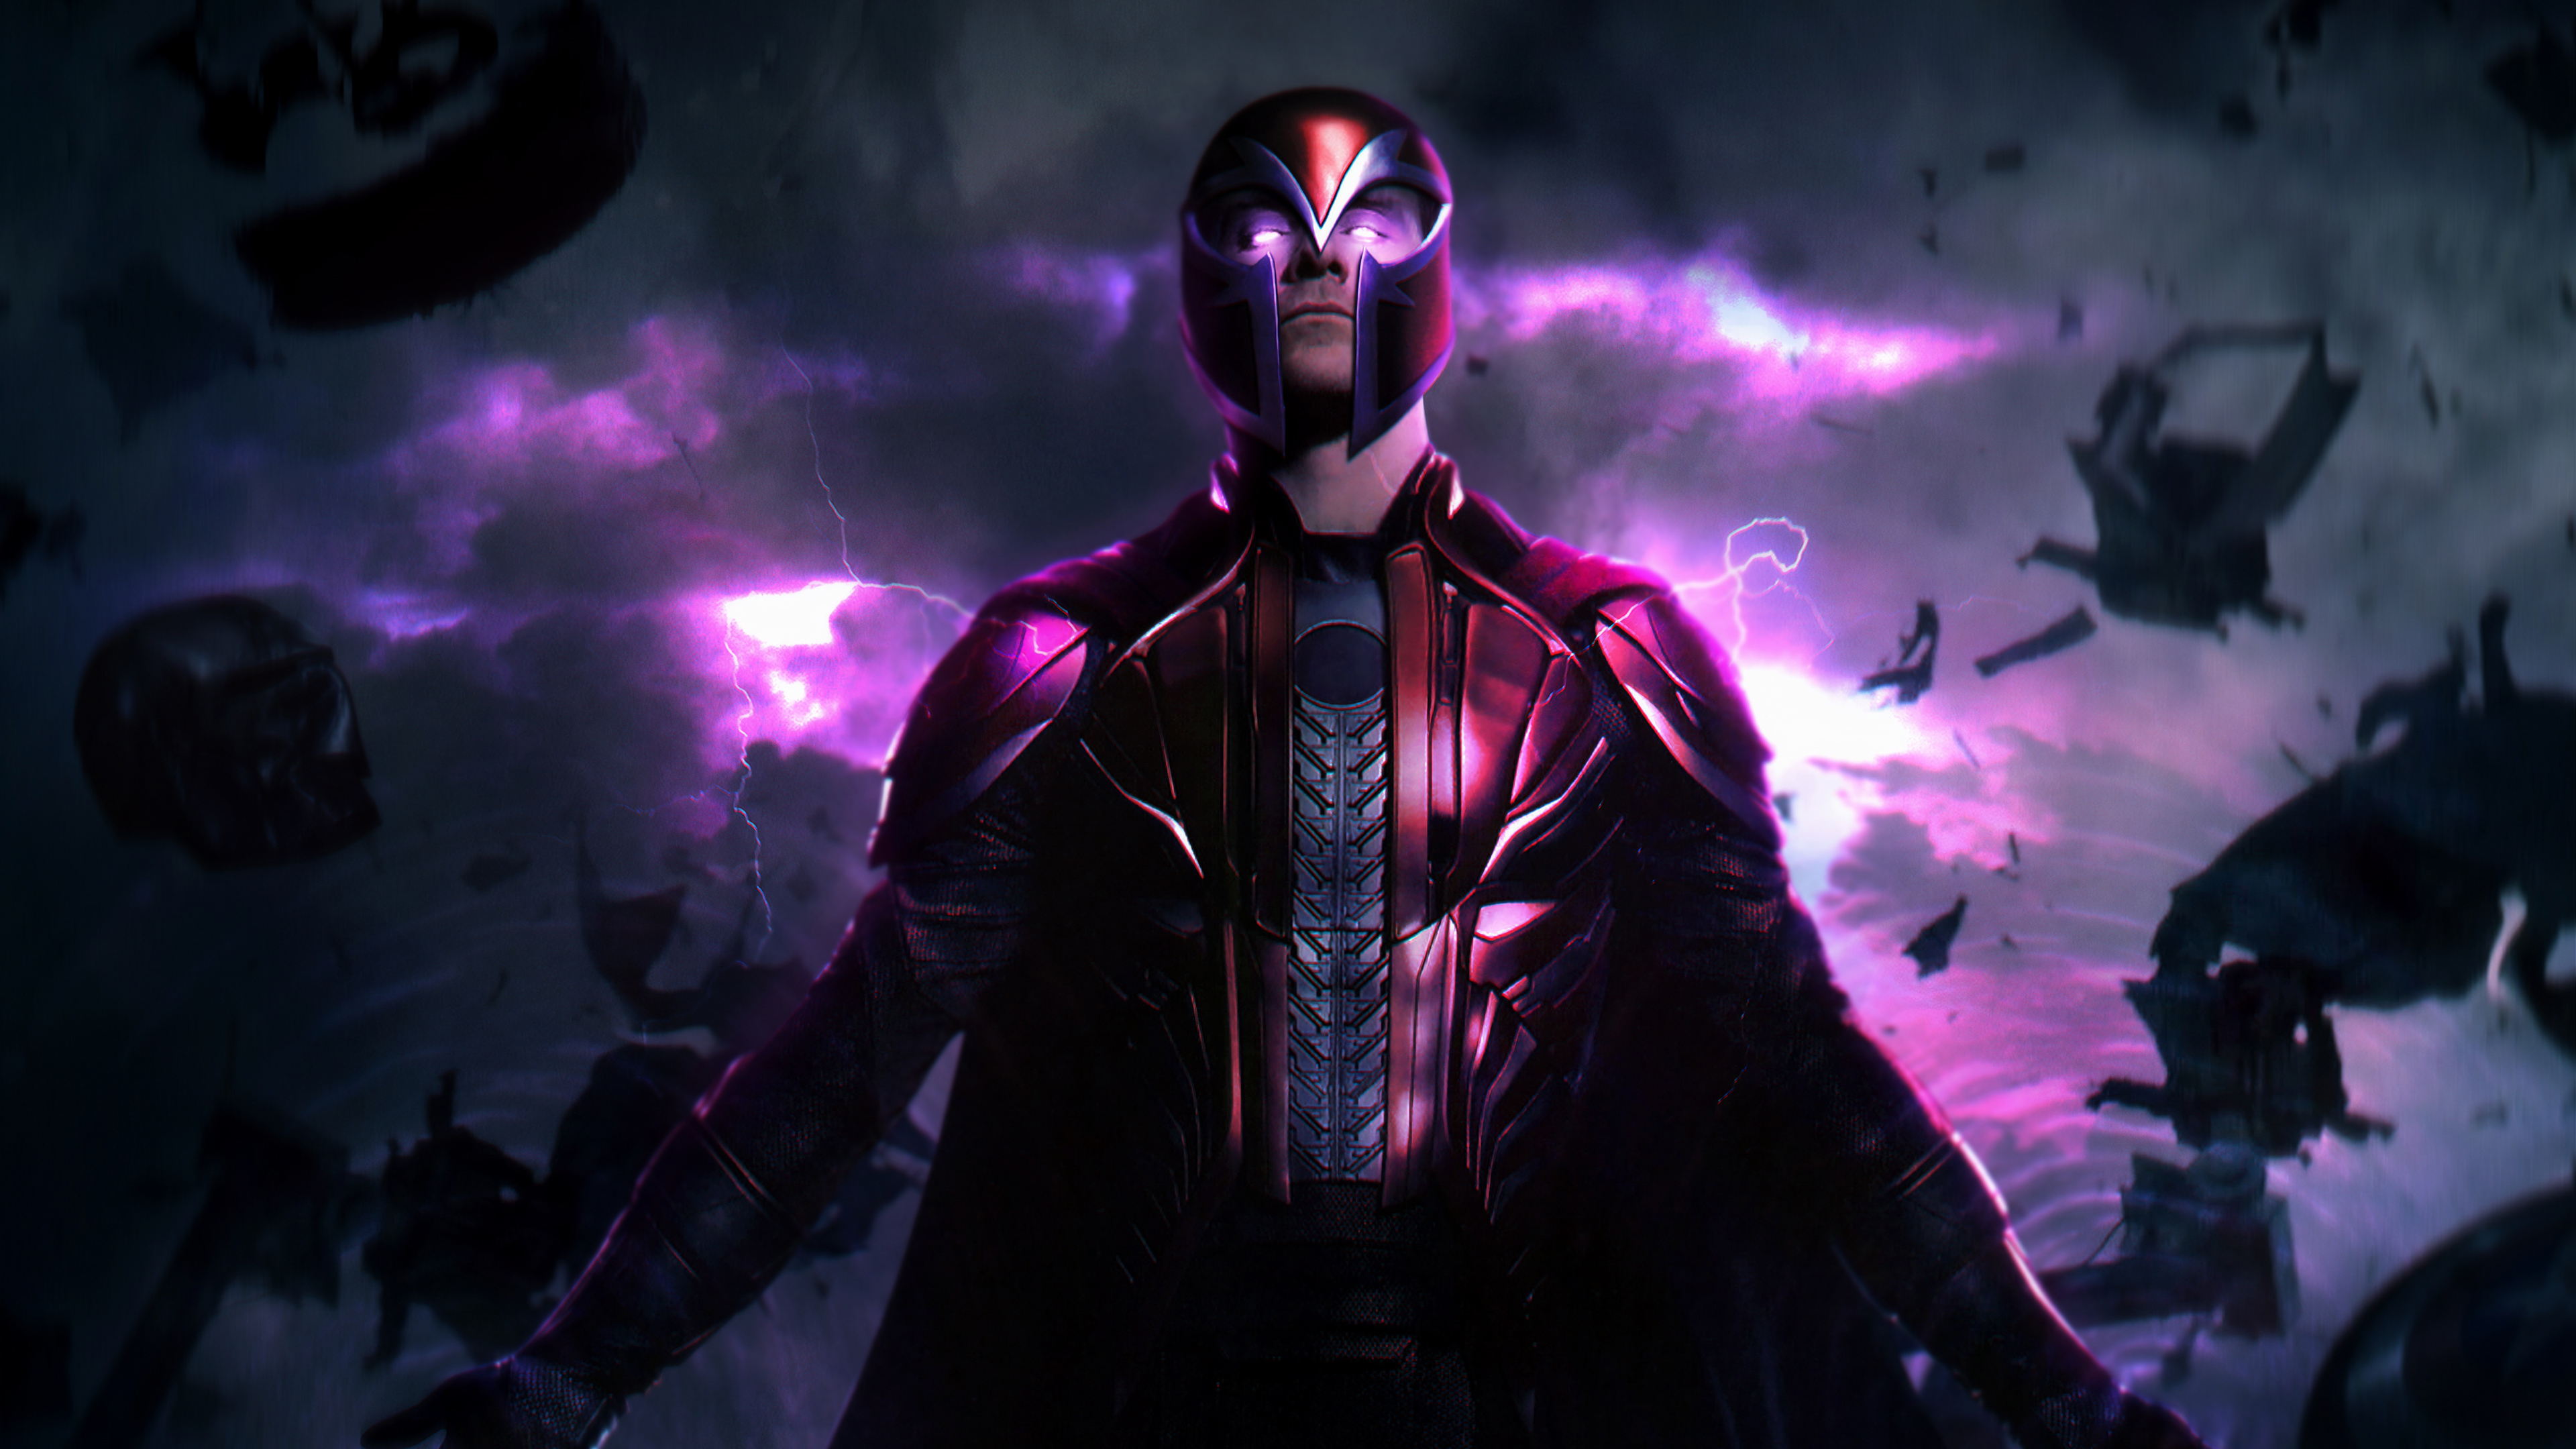 magneto artwork 1568053964 - Magneto Artwork - superheroes wallpapers, magneto wallpapers, hd-wallpapers, deviantart wallpapers, artwork wallpapers, 4k-wallpapers